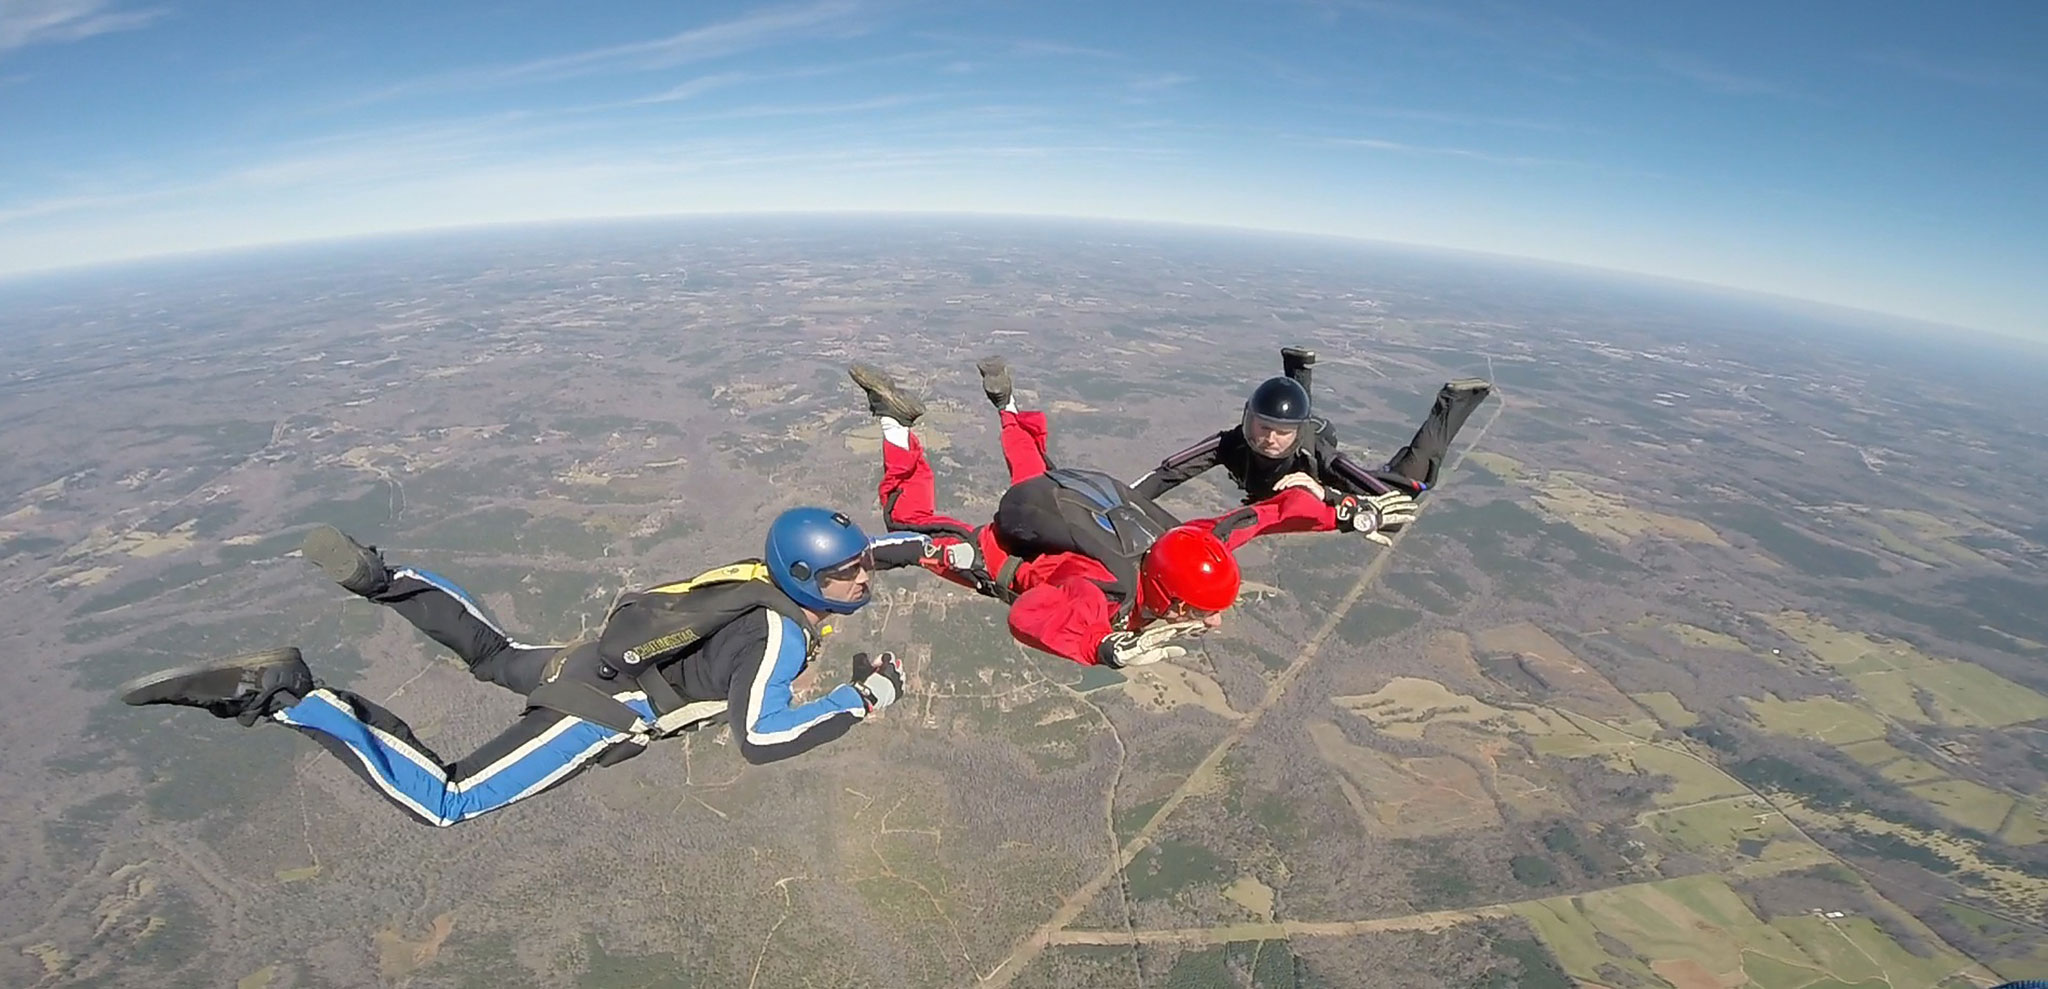 Solo skydiving certification at Skydive Atlanta